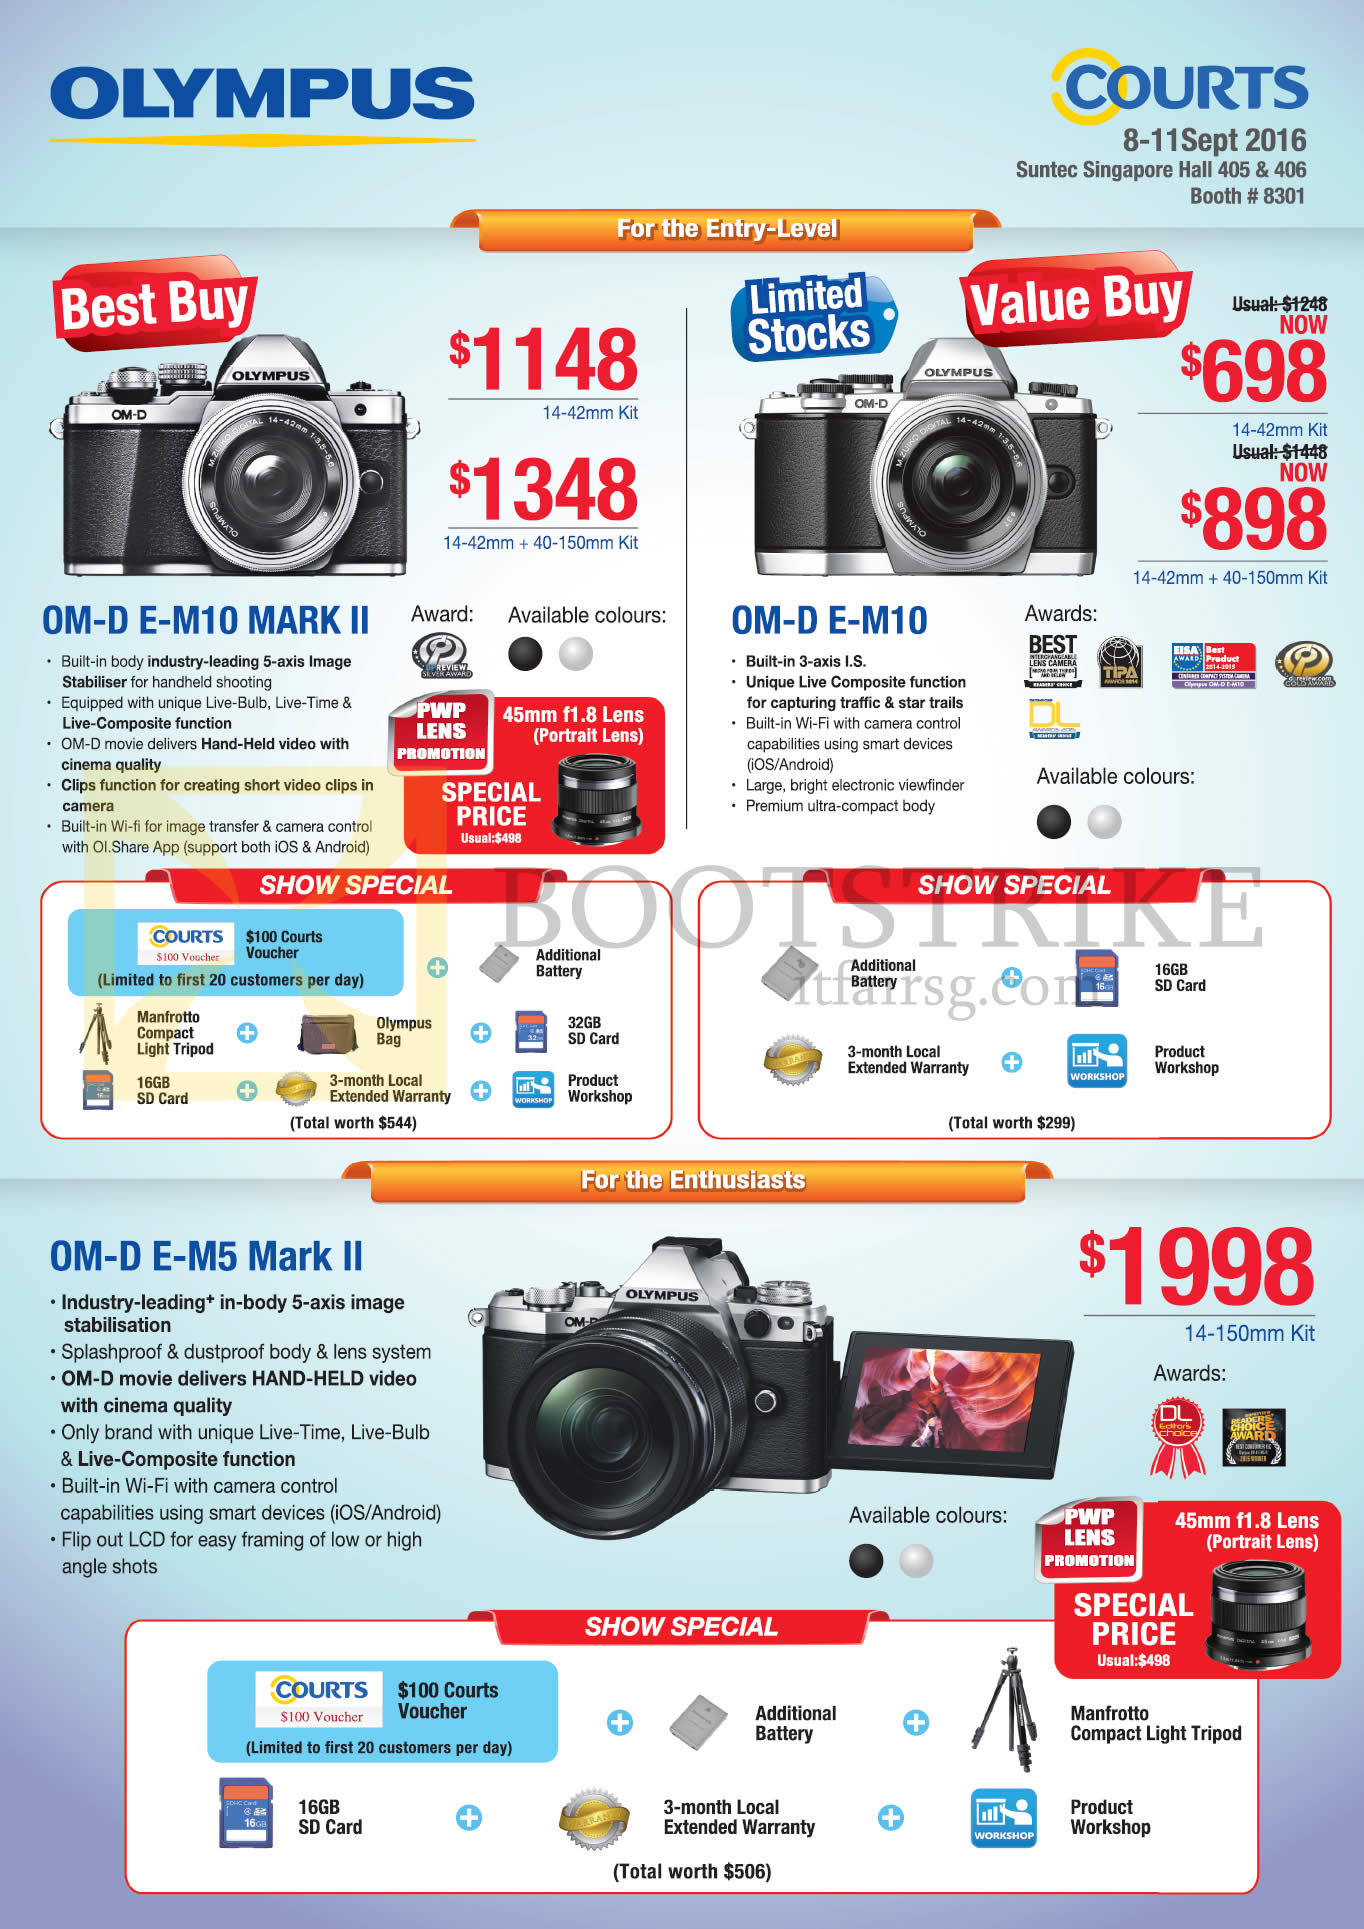 COMEX 2016 price list image brochure of Olympus Digital Cameras OM-D E-M10, Mark II, Om-D E-M5 Mark II